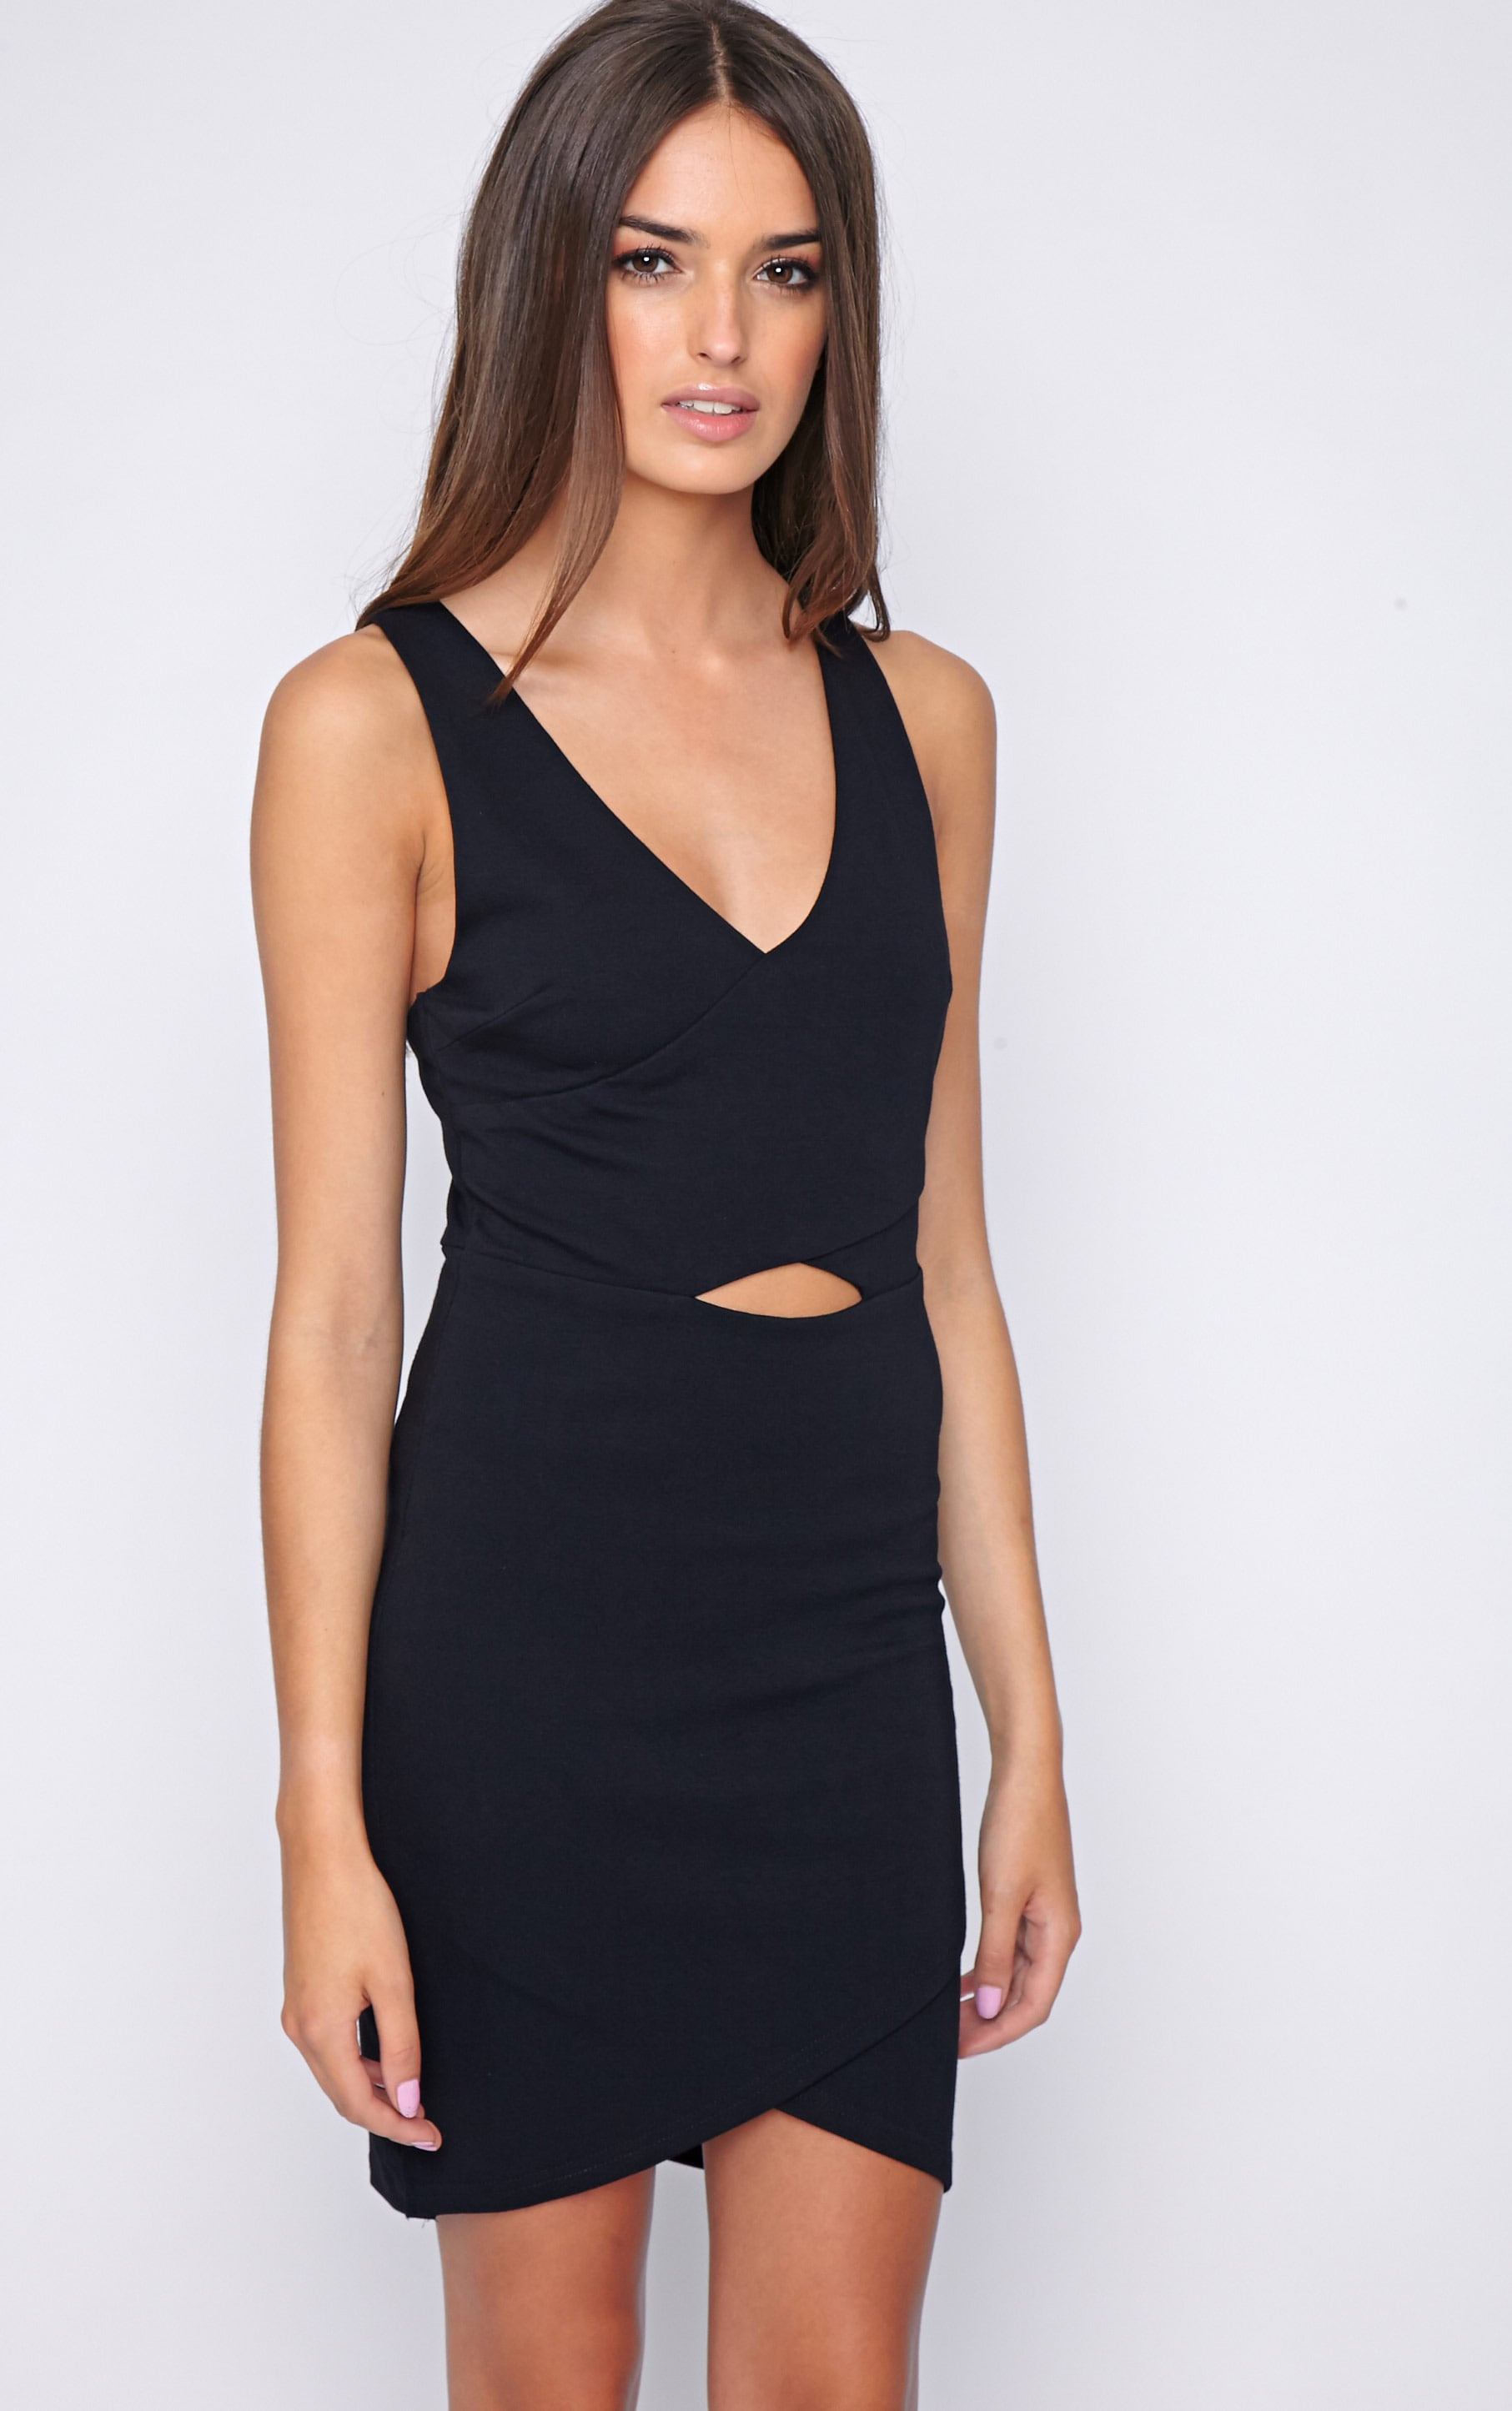 Tulsi Black Crossover Mini Dress 1